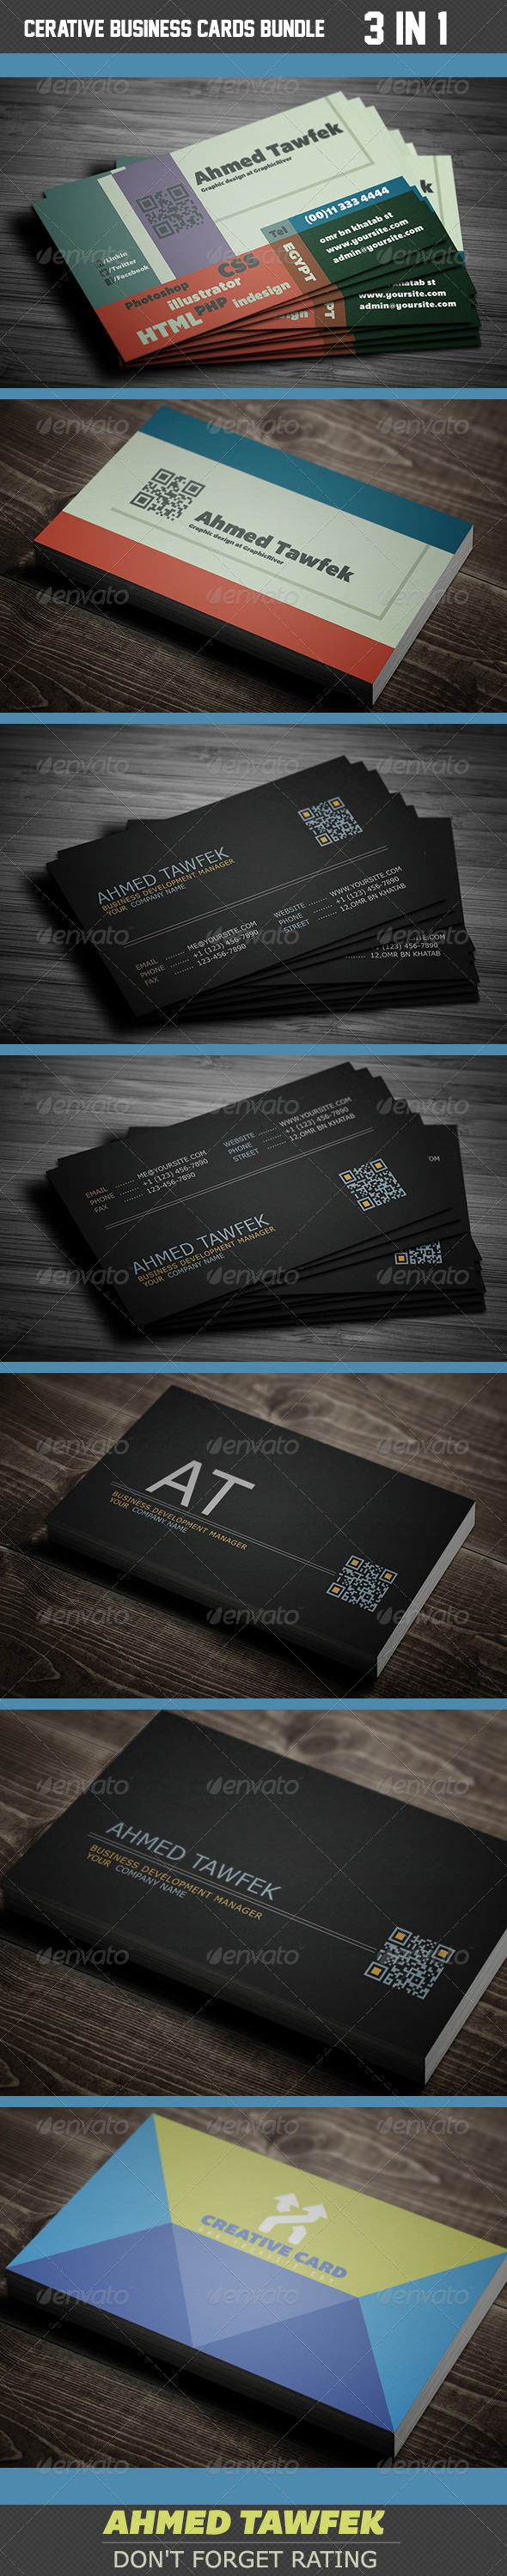 GraphicRiver Cerative Business Cards Bundle 4118515